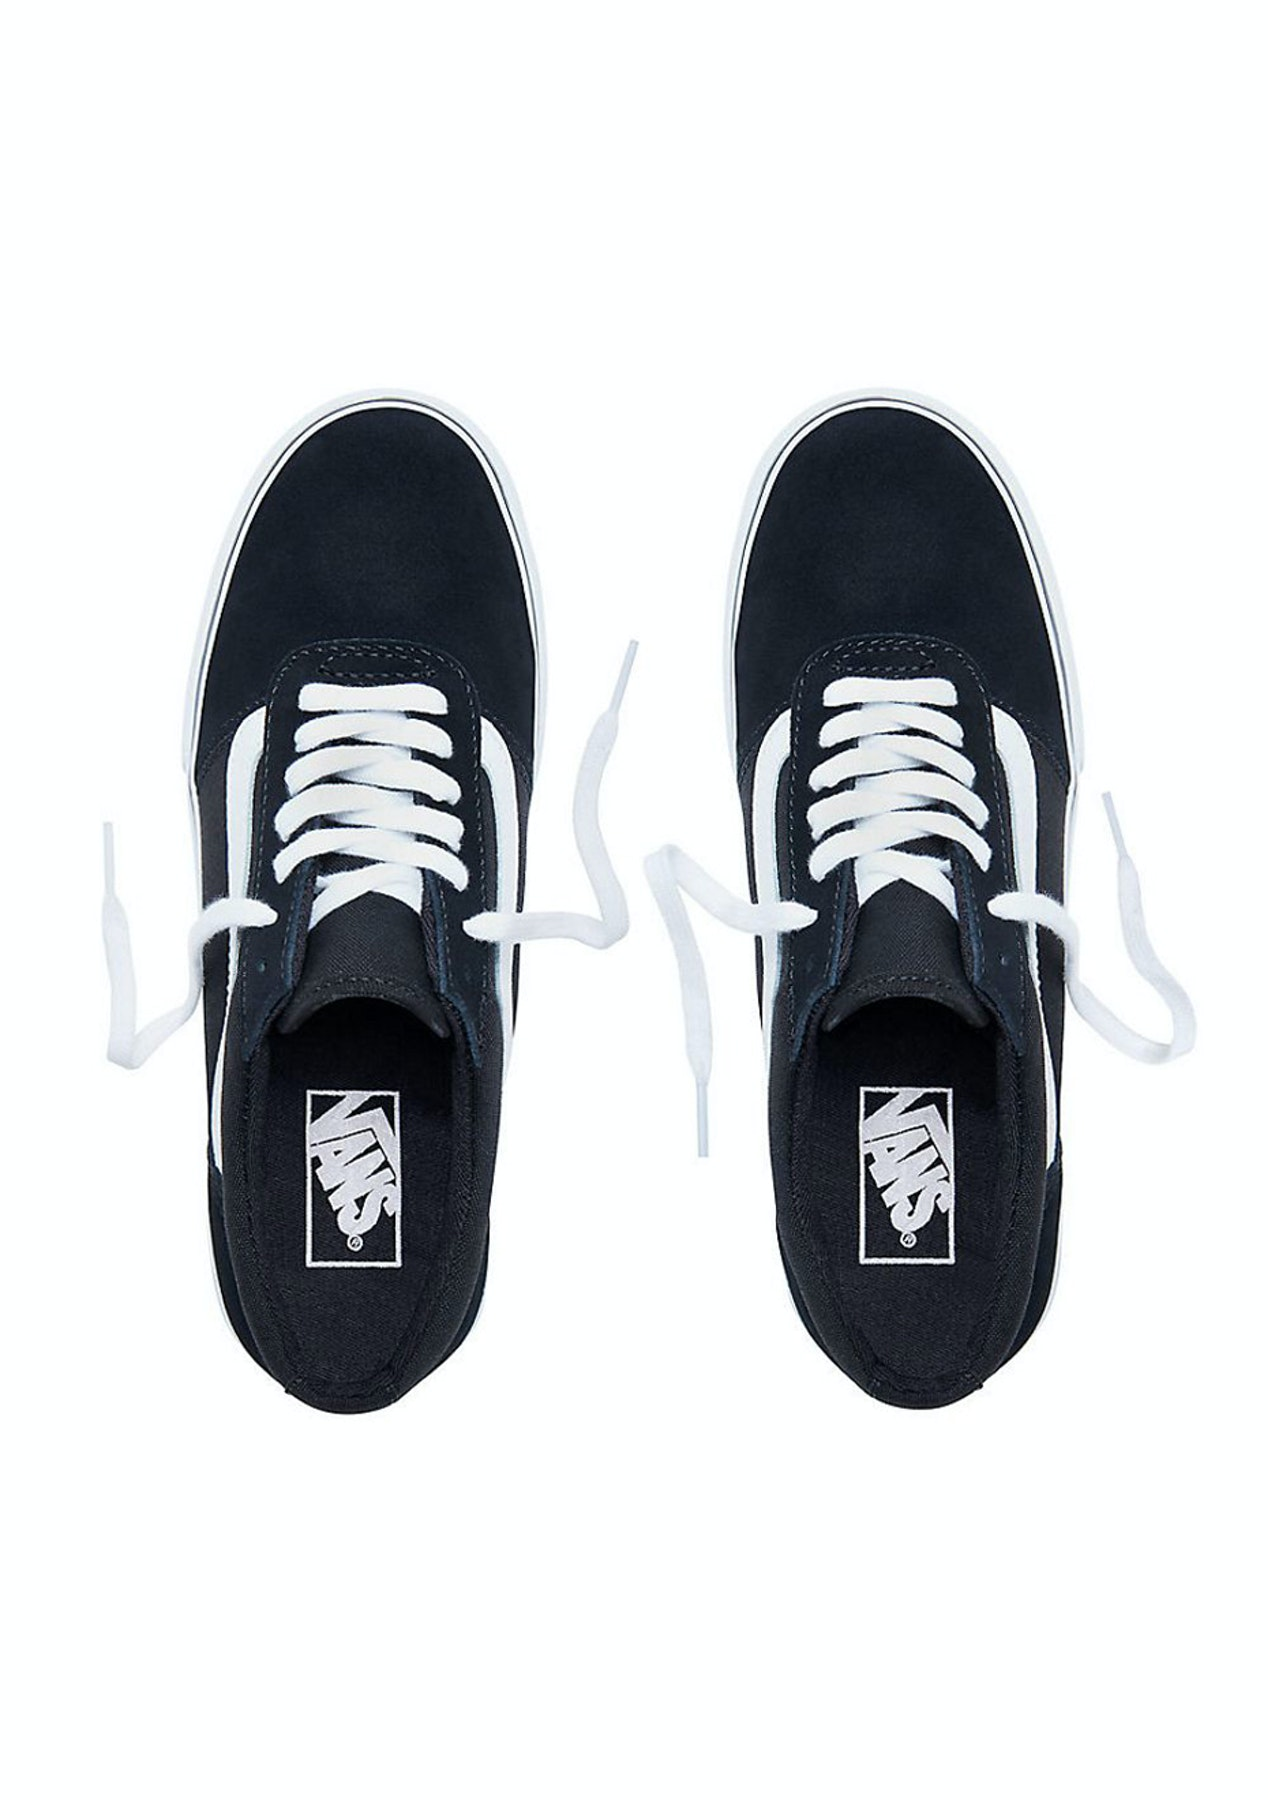 a1082e2f8c Vans - Womens Maddie - Canvas - Black White - Vans for The Family - Onceit